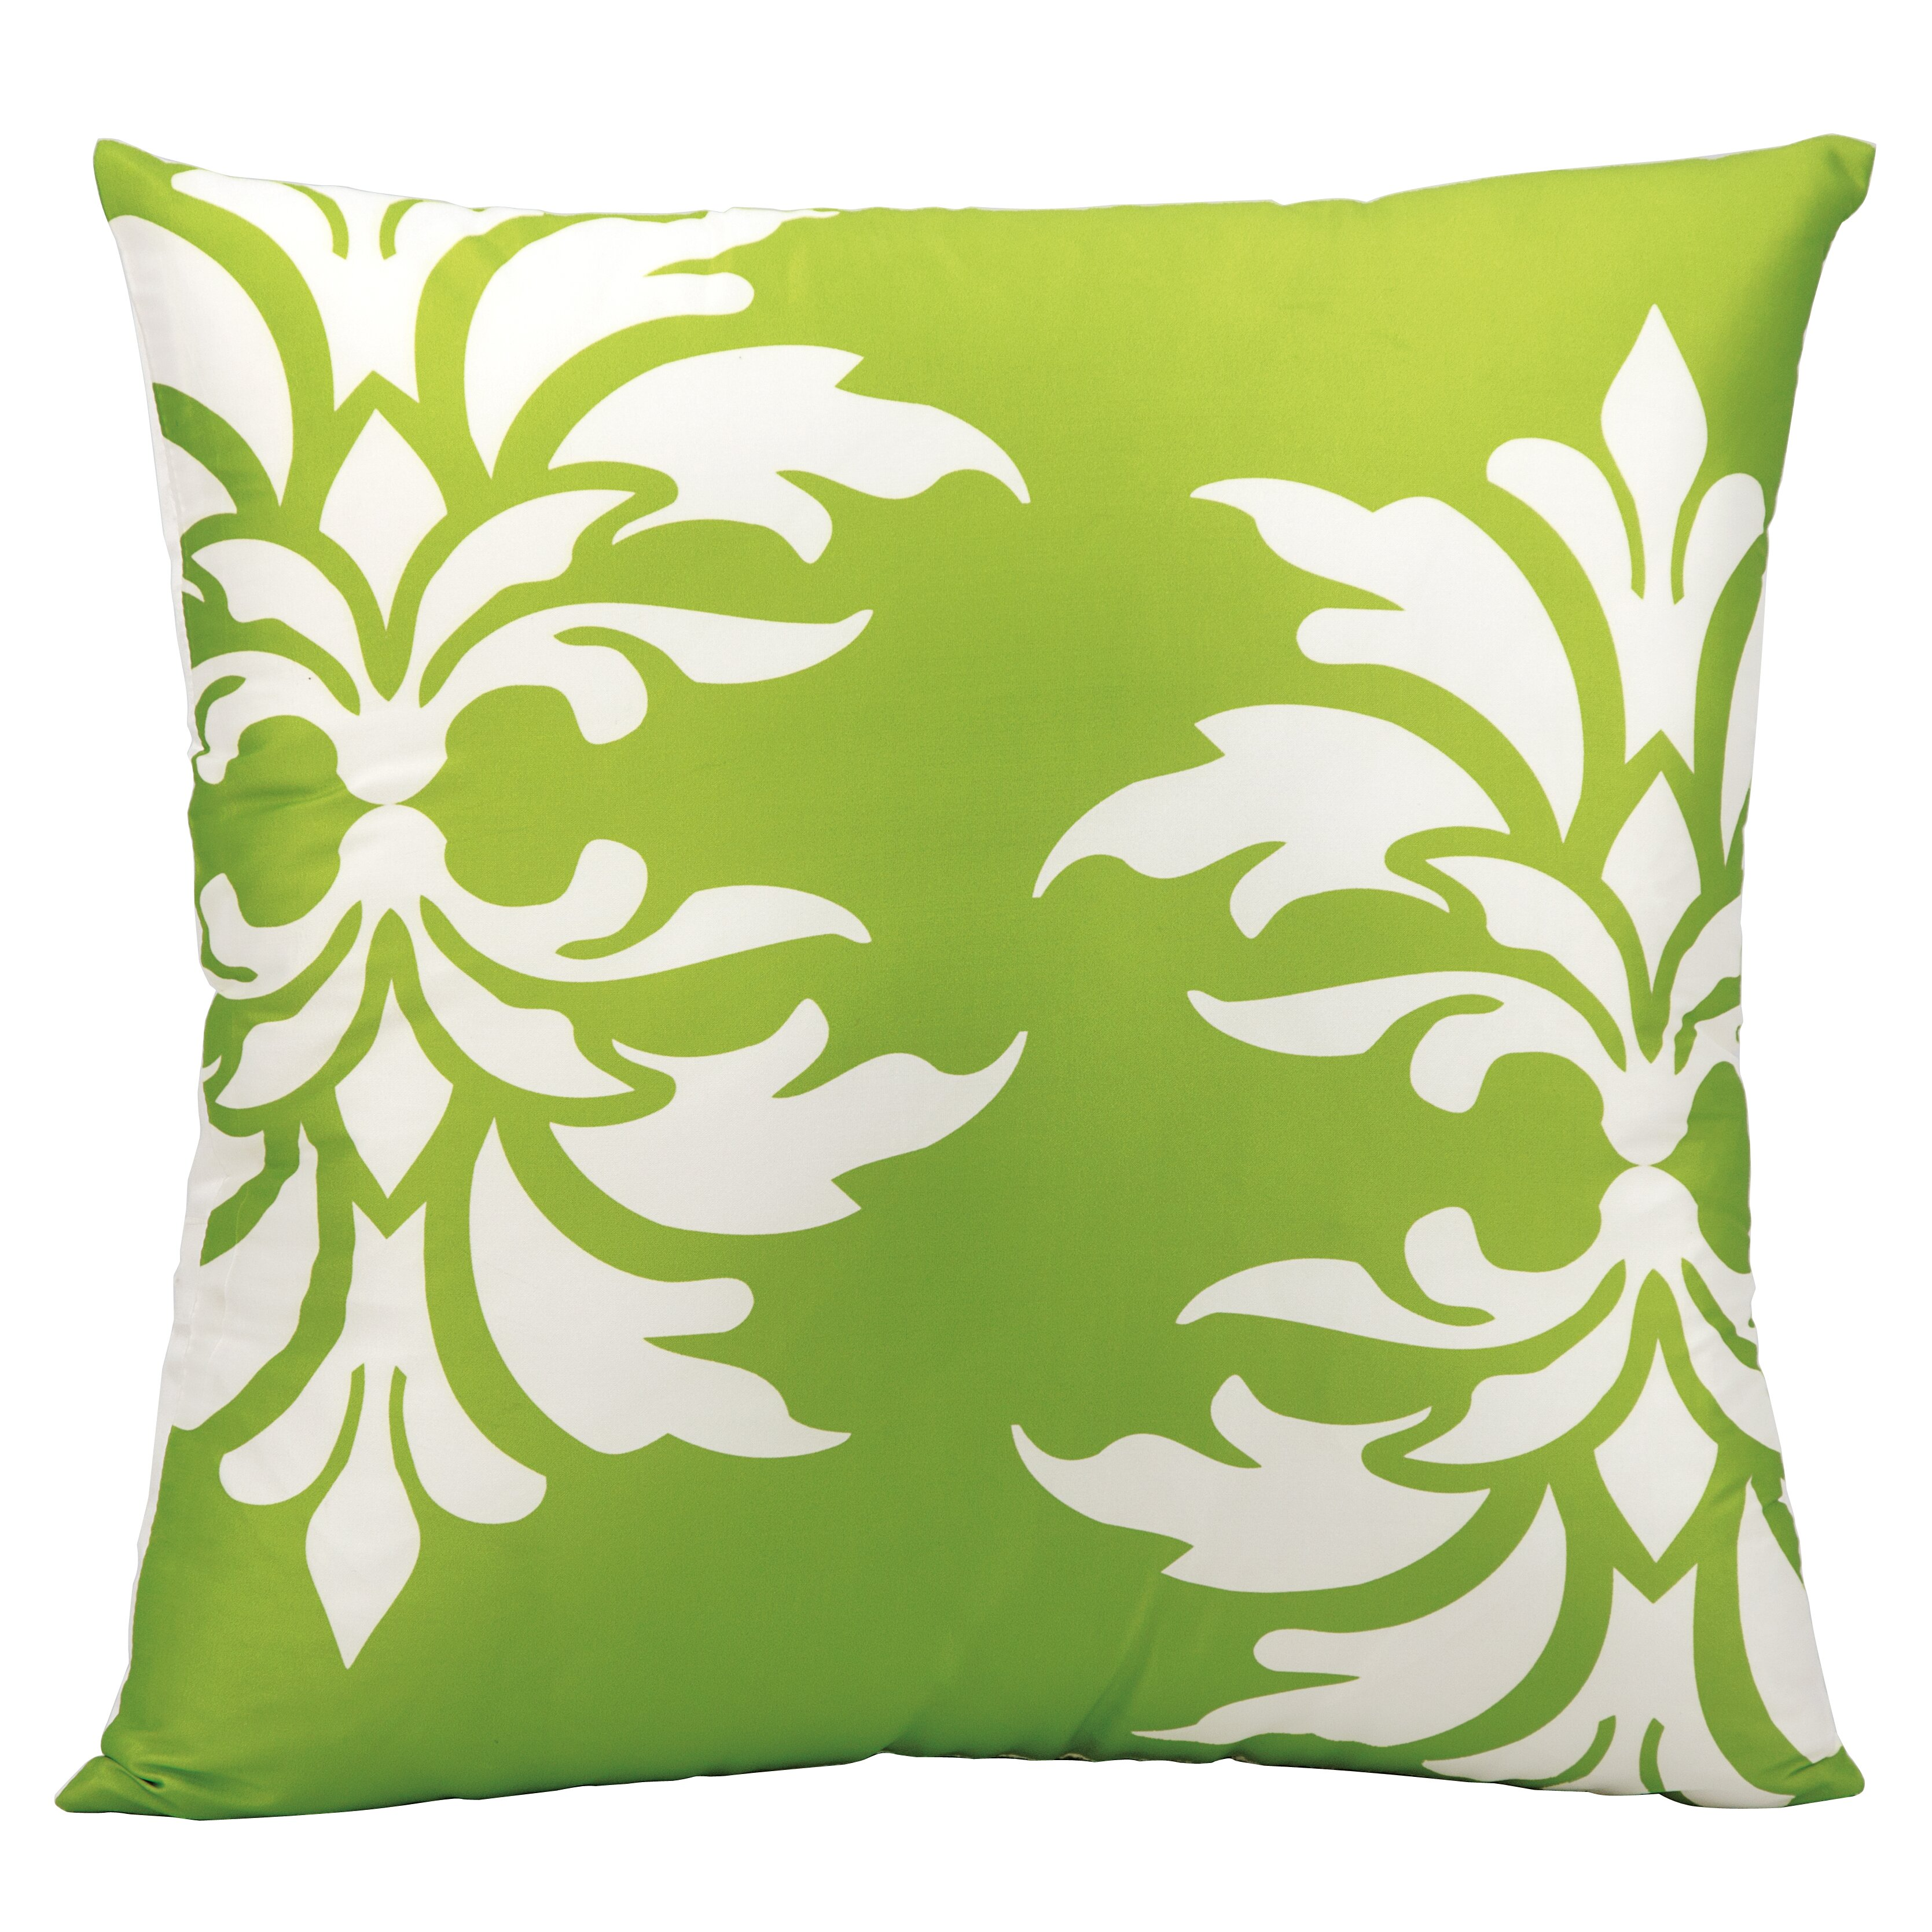 Throw Pillows Damask : Andover Mills Eudora Double Damask Outdoor Throw Pillow & Reviews Wayfair